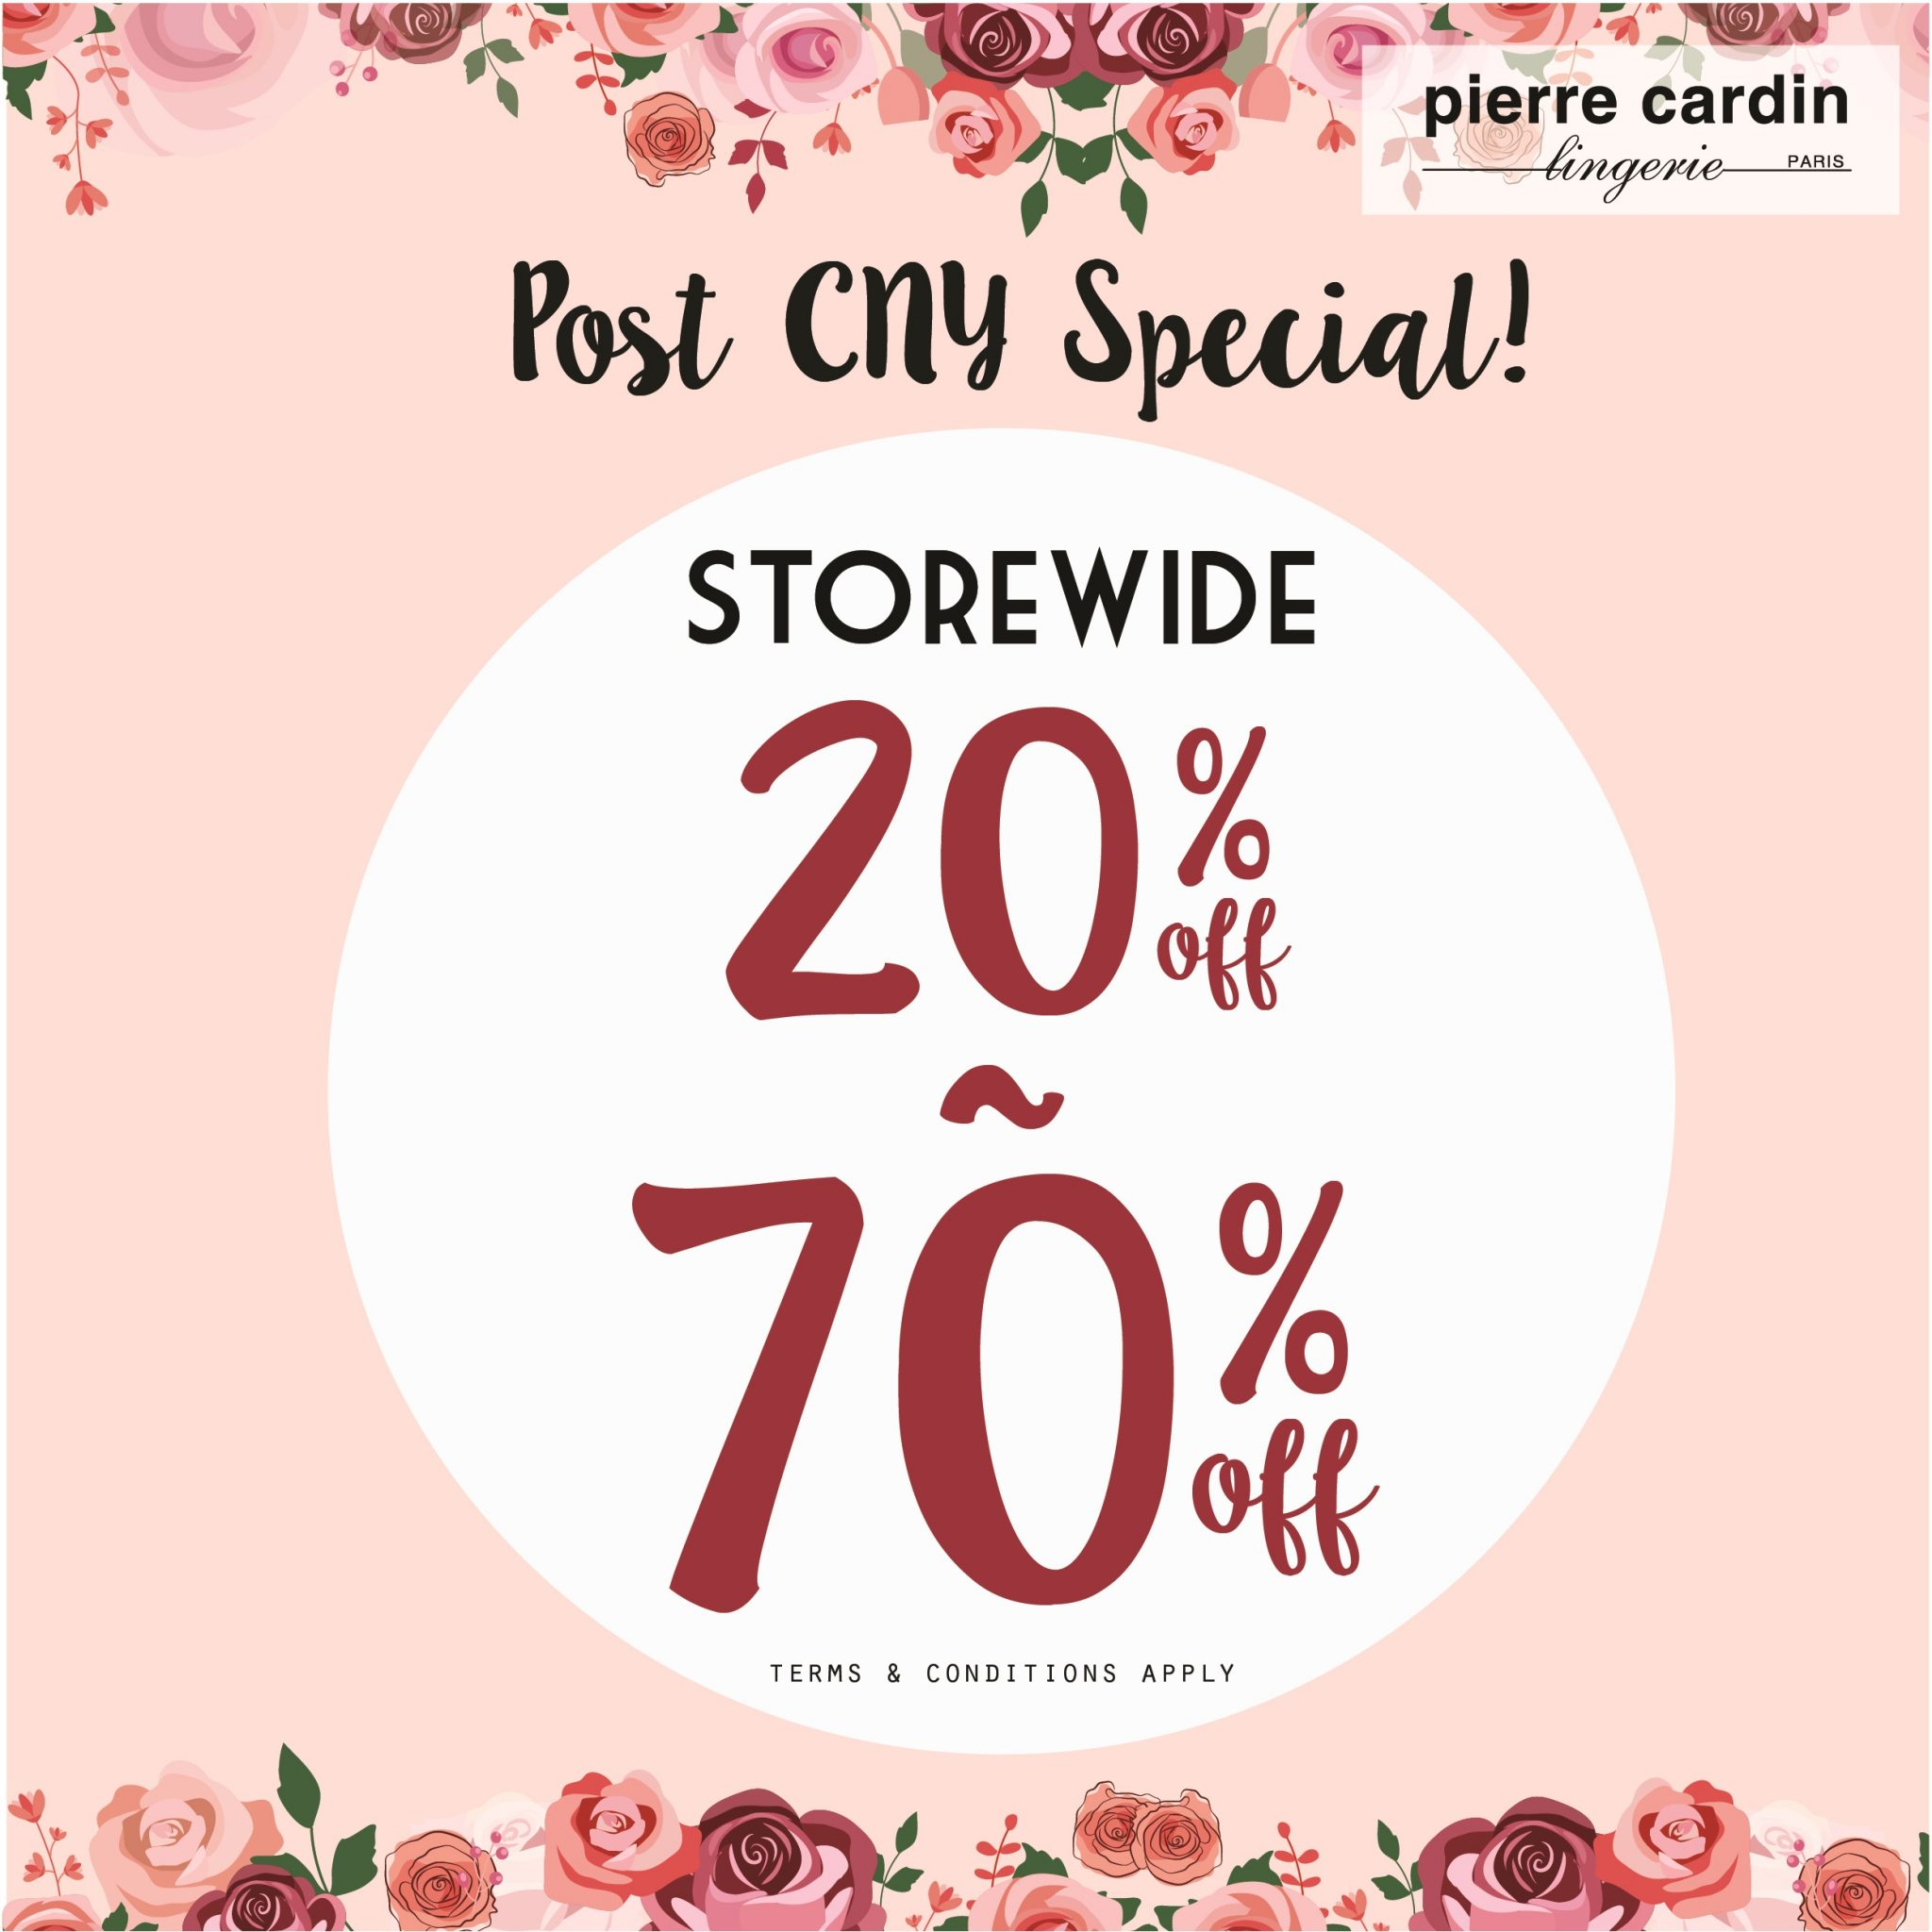 Take Up To 70 Off Storewide This Post CNY At Pierre Cardin Lingerie